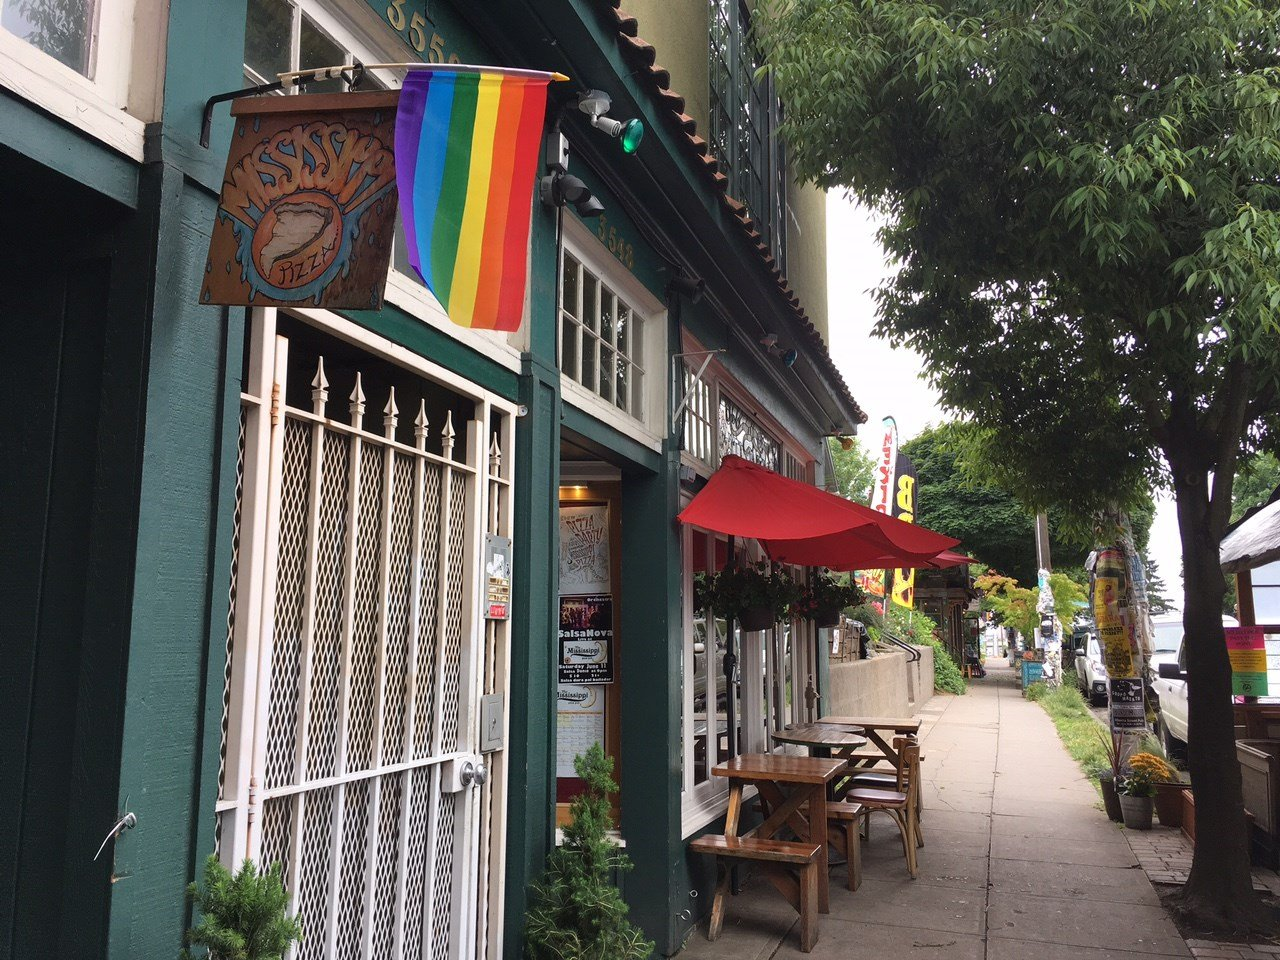 Some of the rainbow flags at businesses on N. Mississippi Monday.